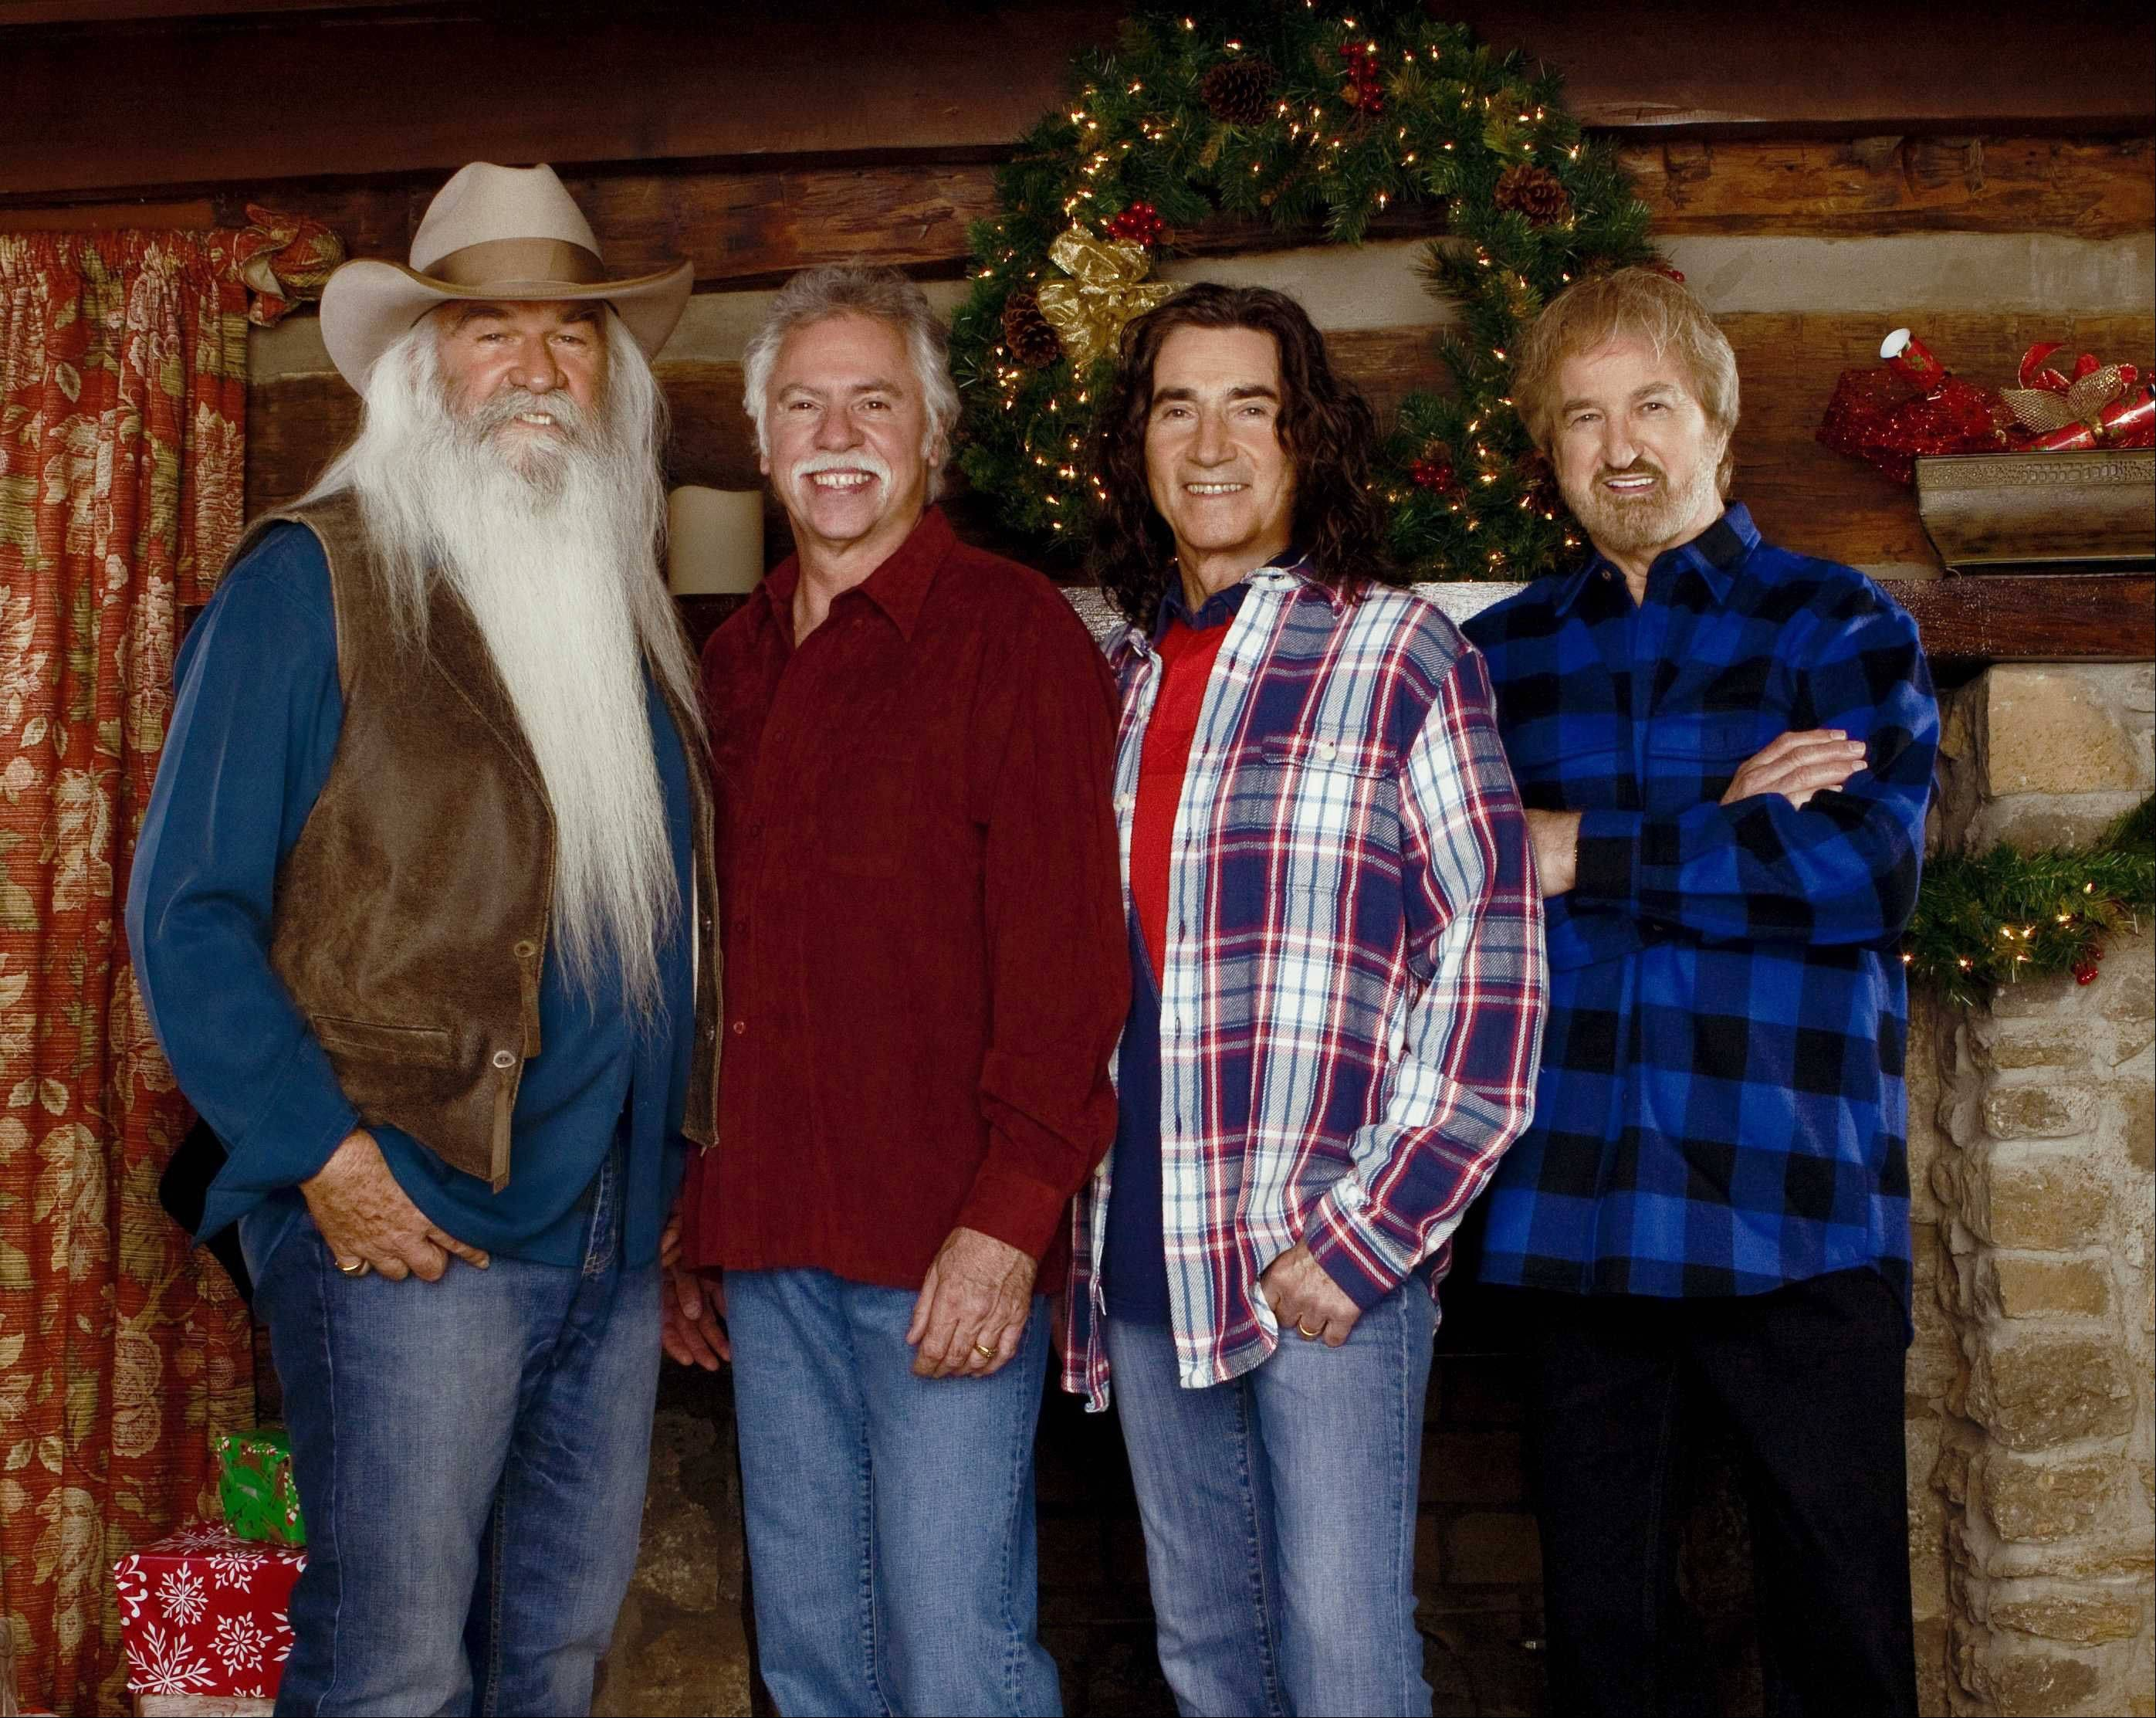 The Oak Ridge Boys will be in Naperville Dec. 21, just days before they kick off their year-long 40th anniversary celebration.